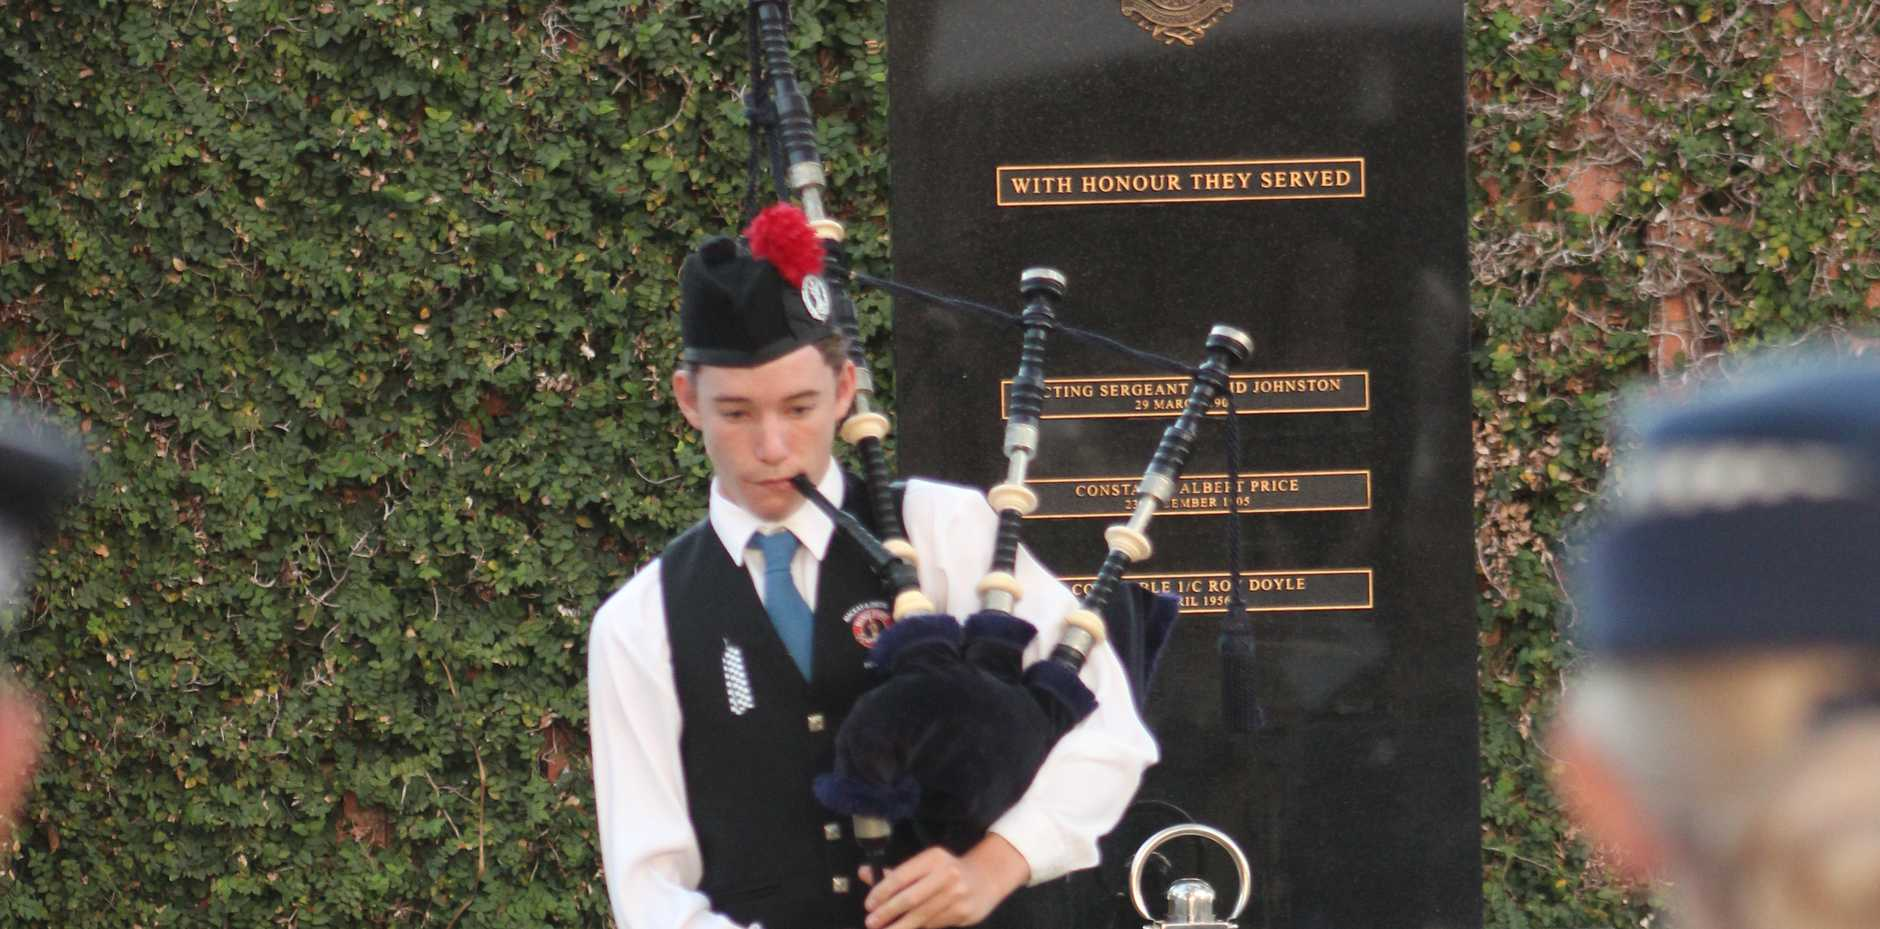 The Piper Oliver McCahill who played the Lament